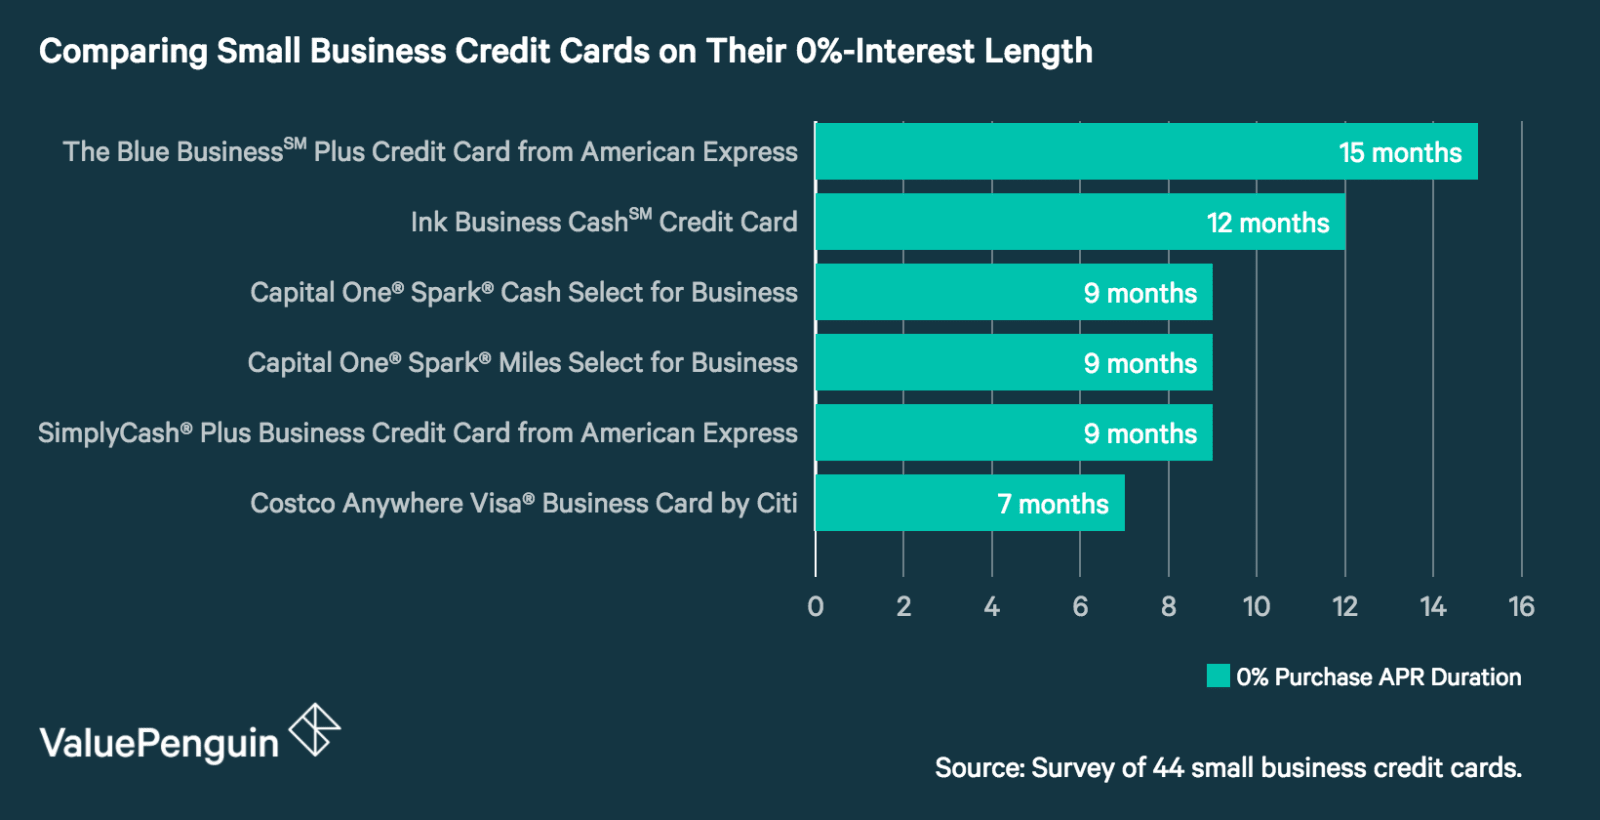 Showing the 0% intro APR period for the best small business credit cards.